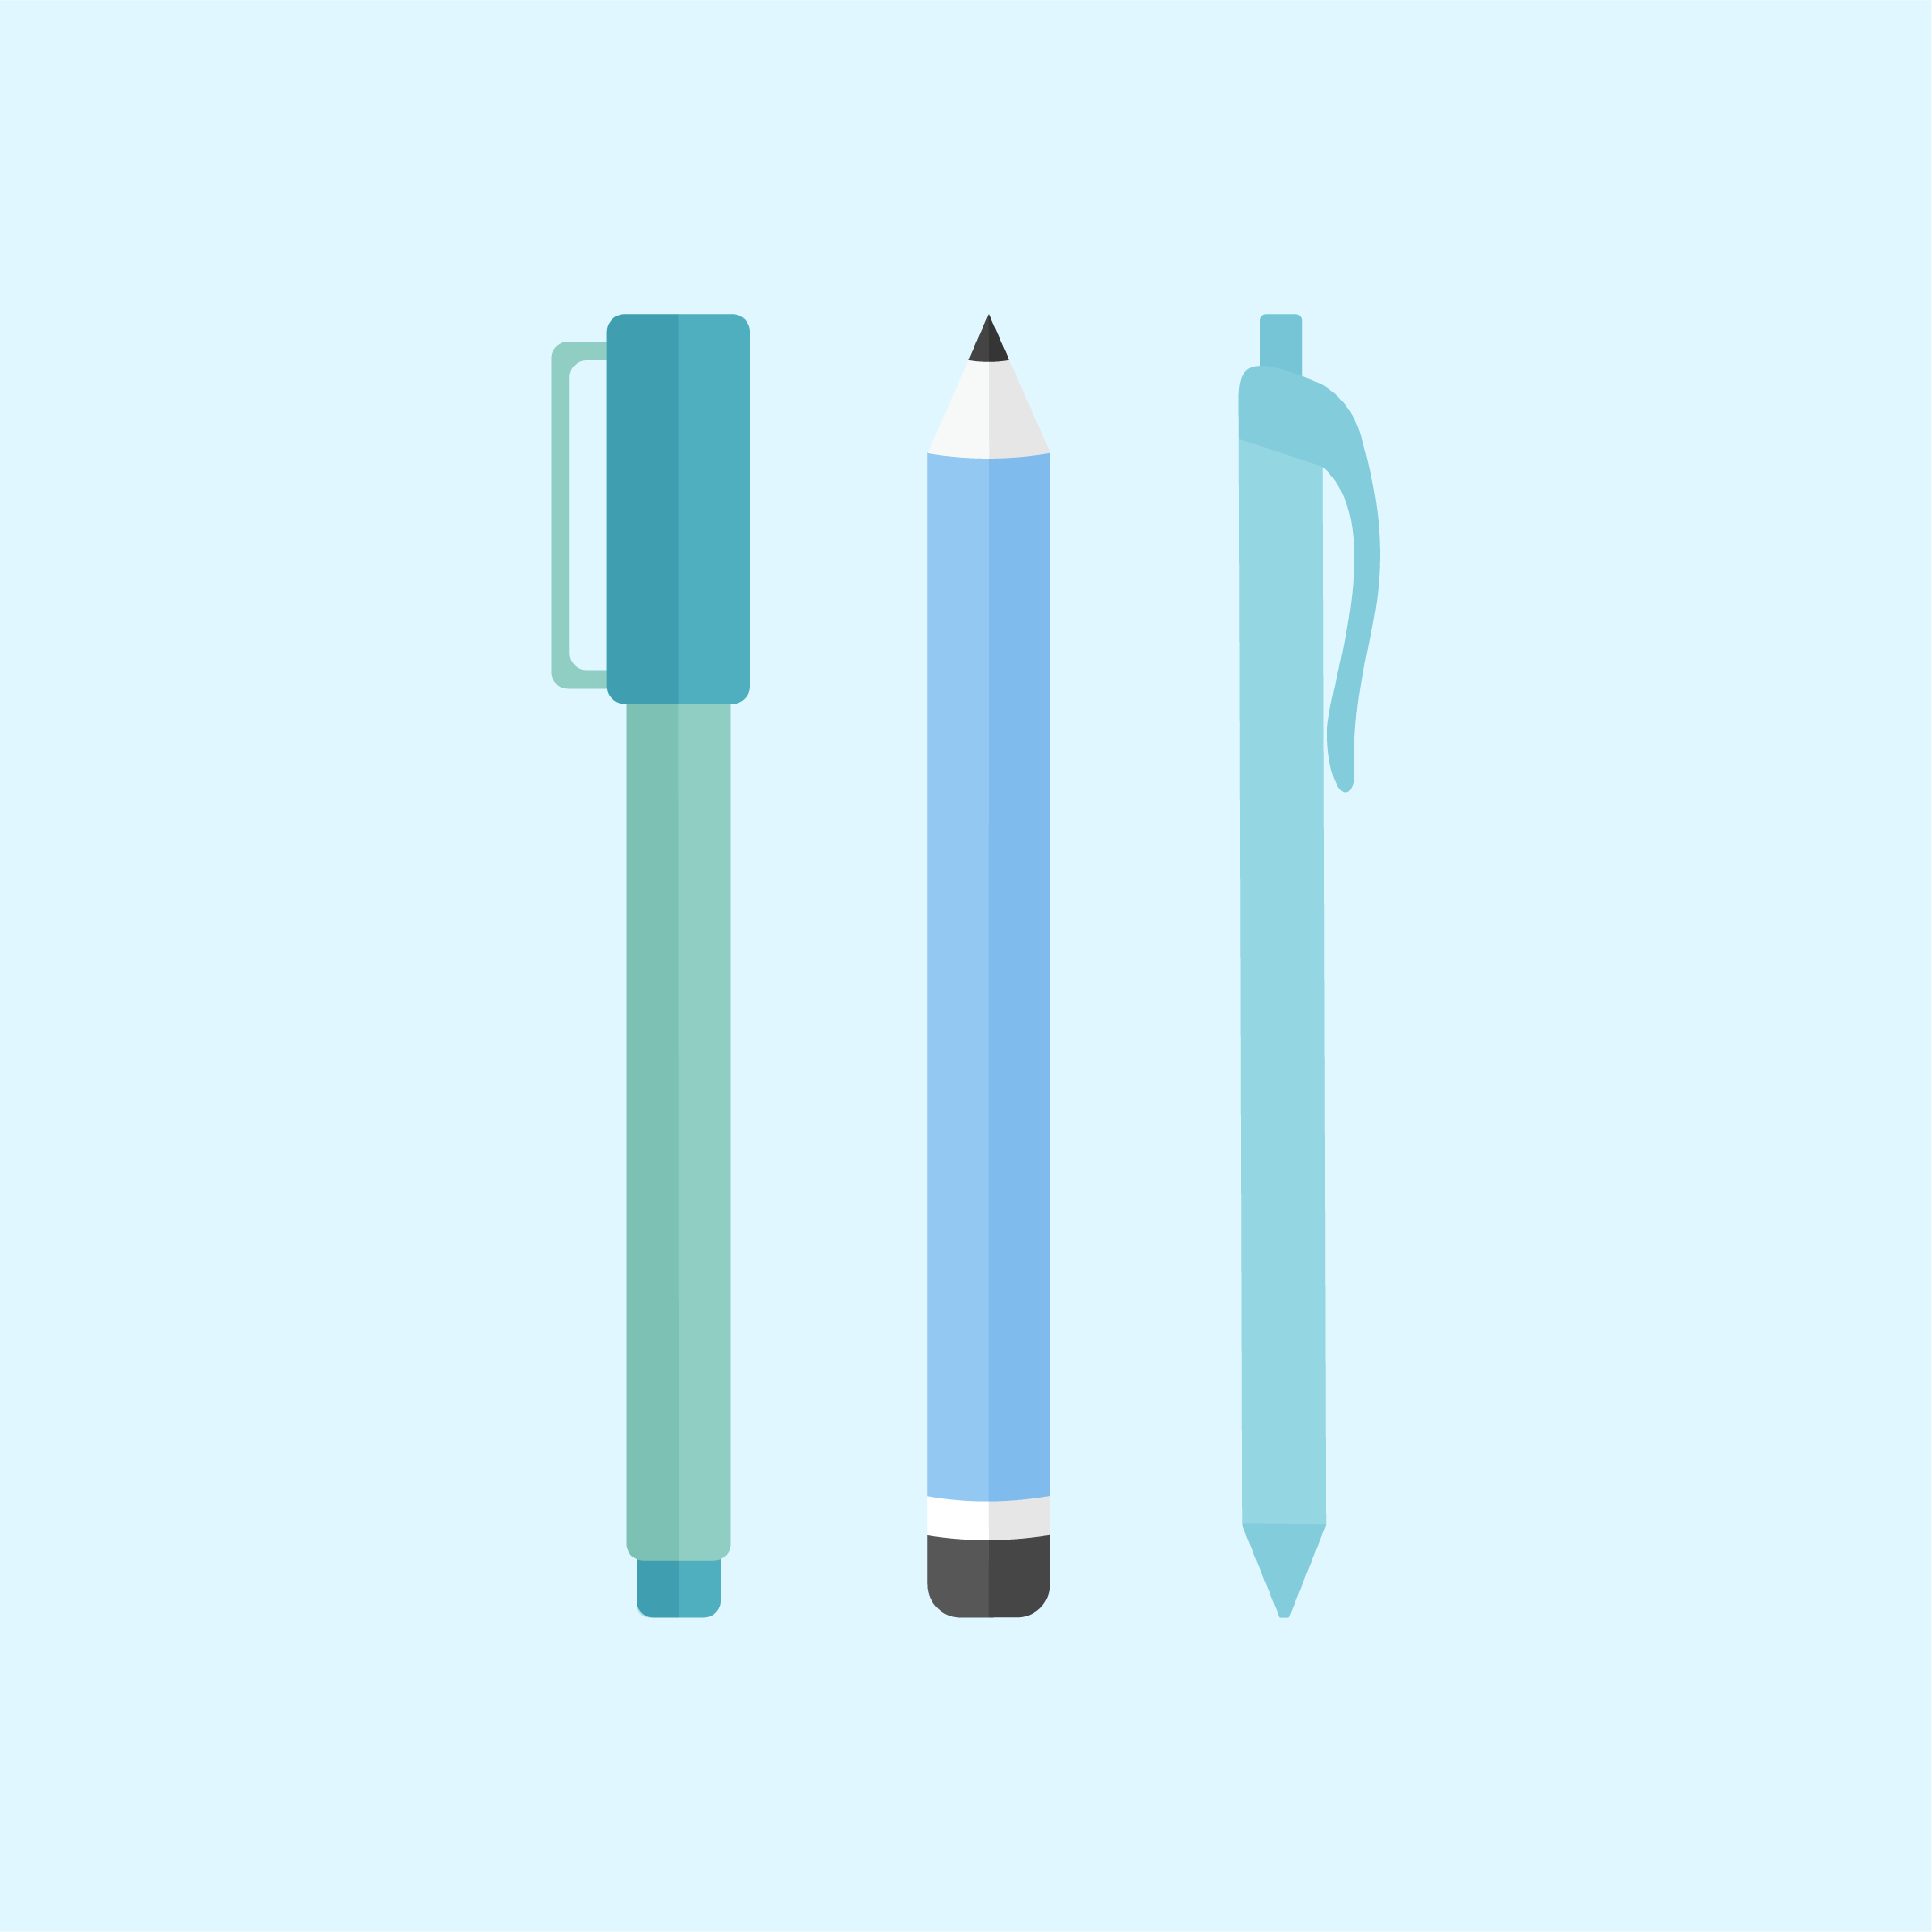 Vector illustration of three icons: a pen with a cap, pencil & ballpoint pen in flat design style